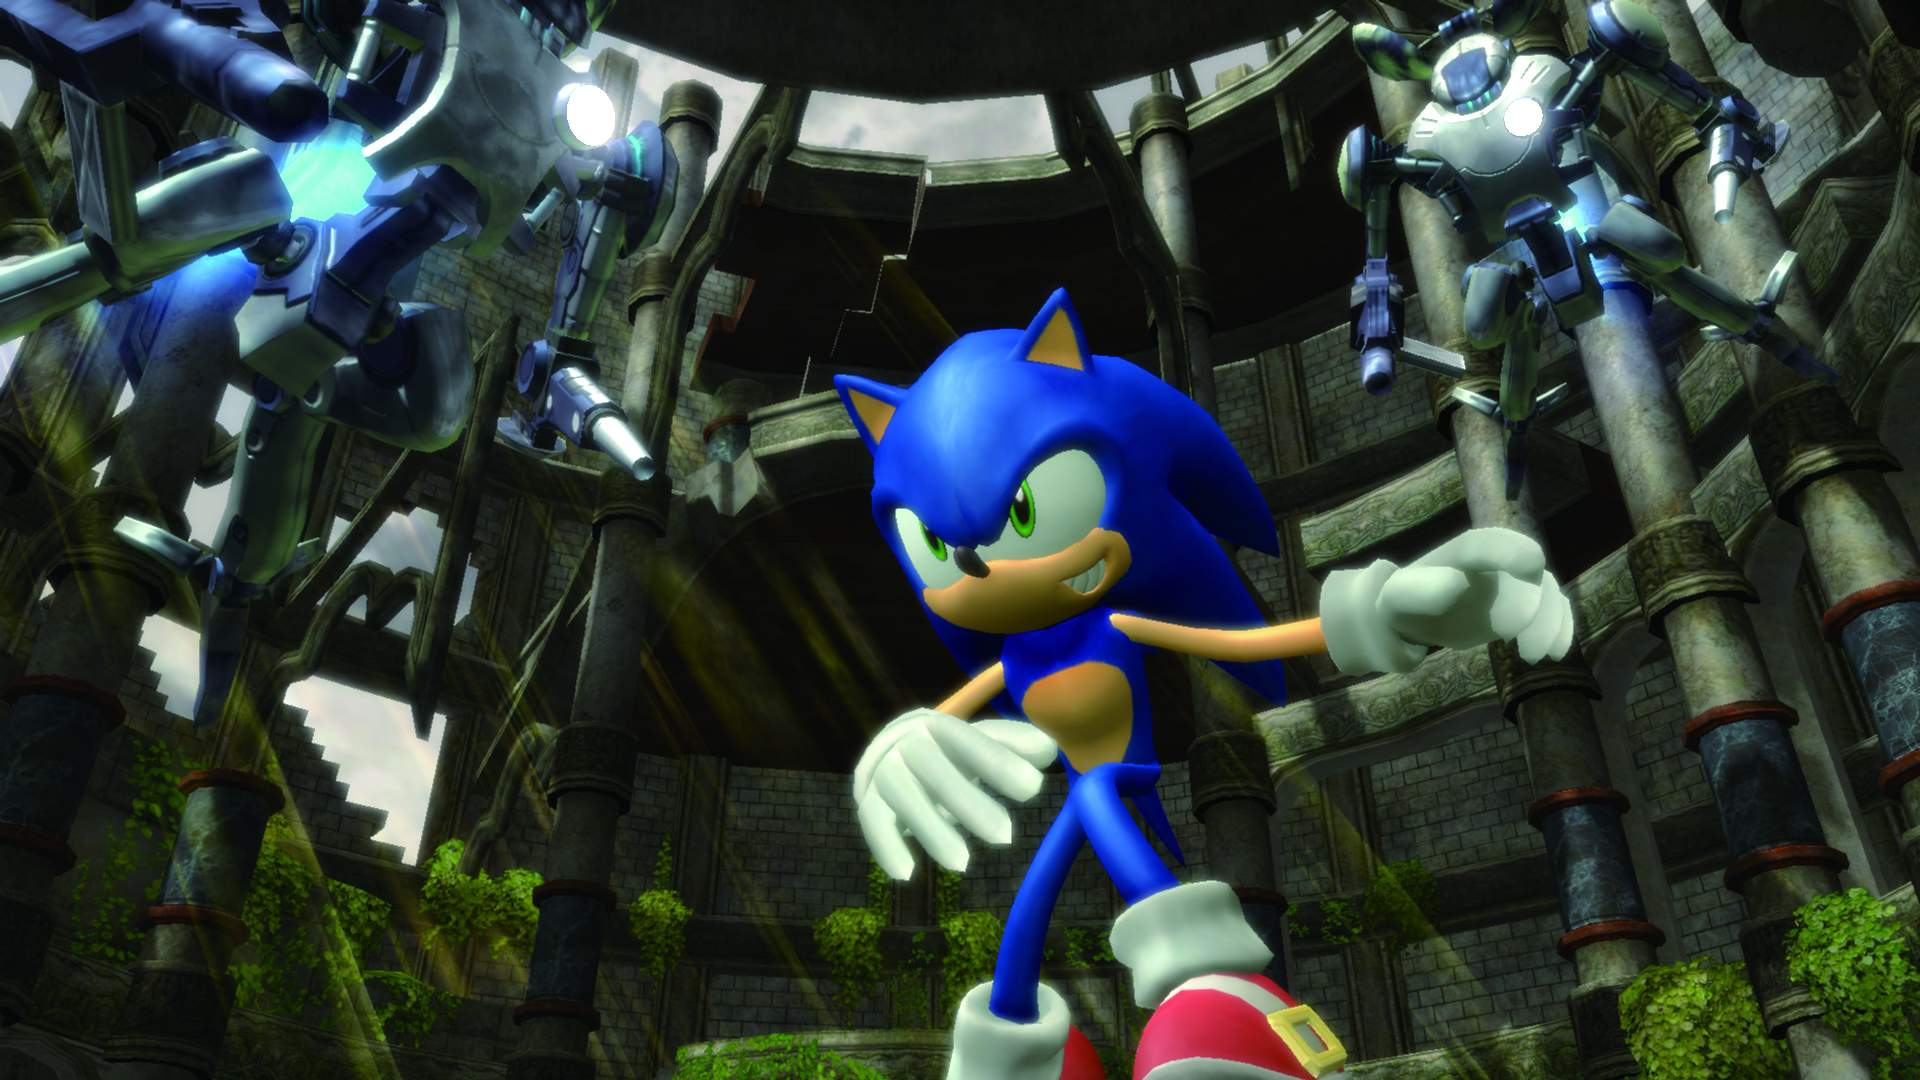 File:Sonic06screen8.jpg